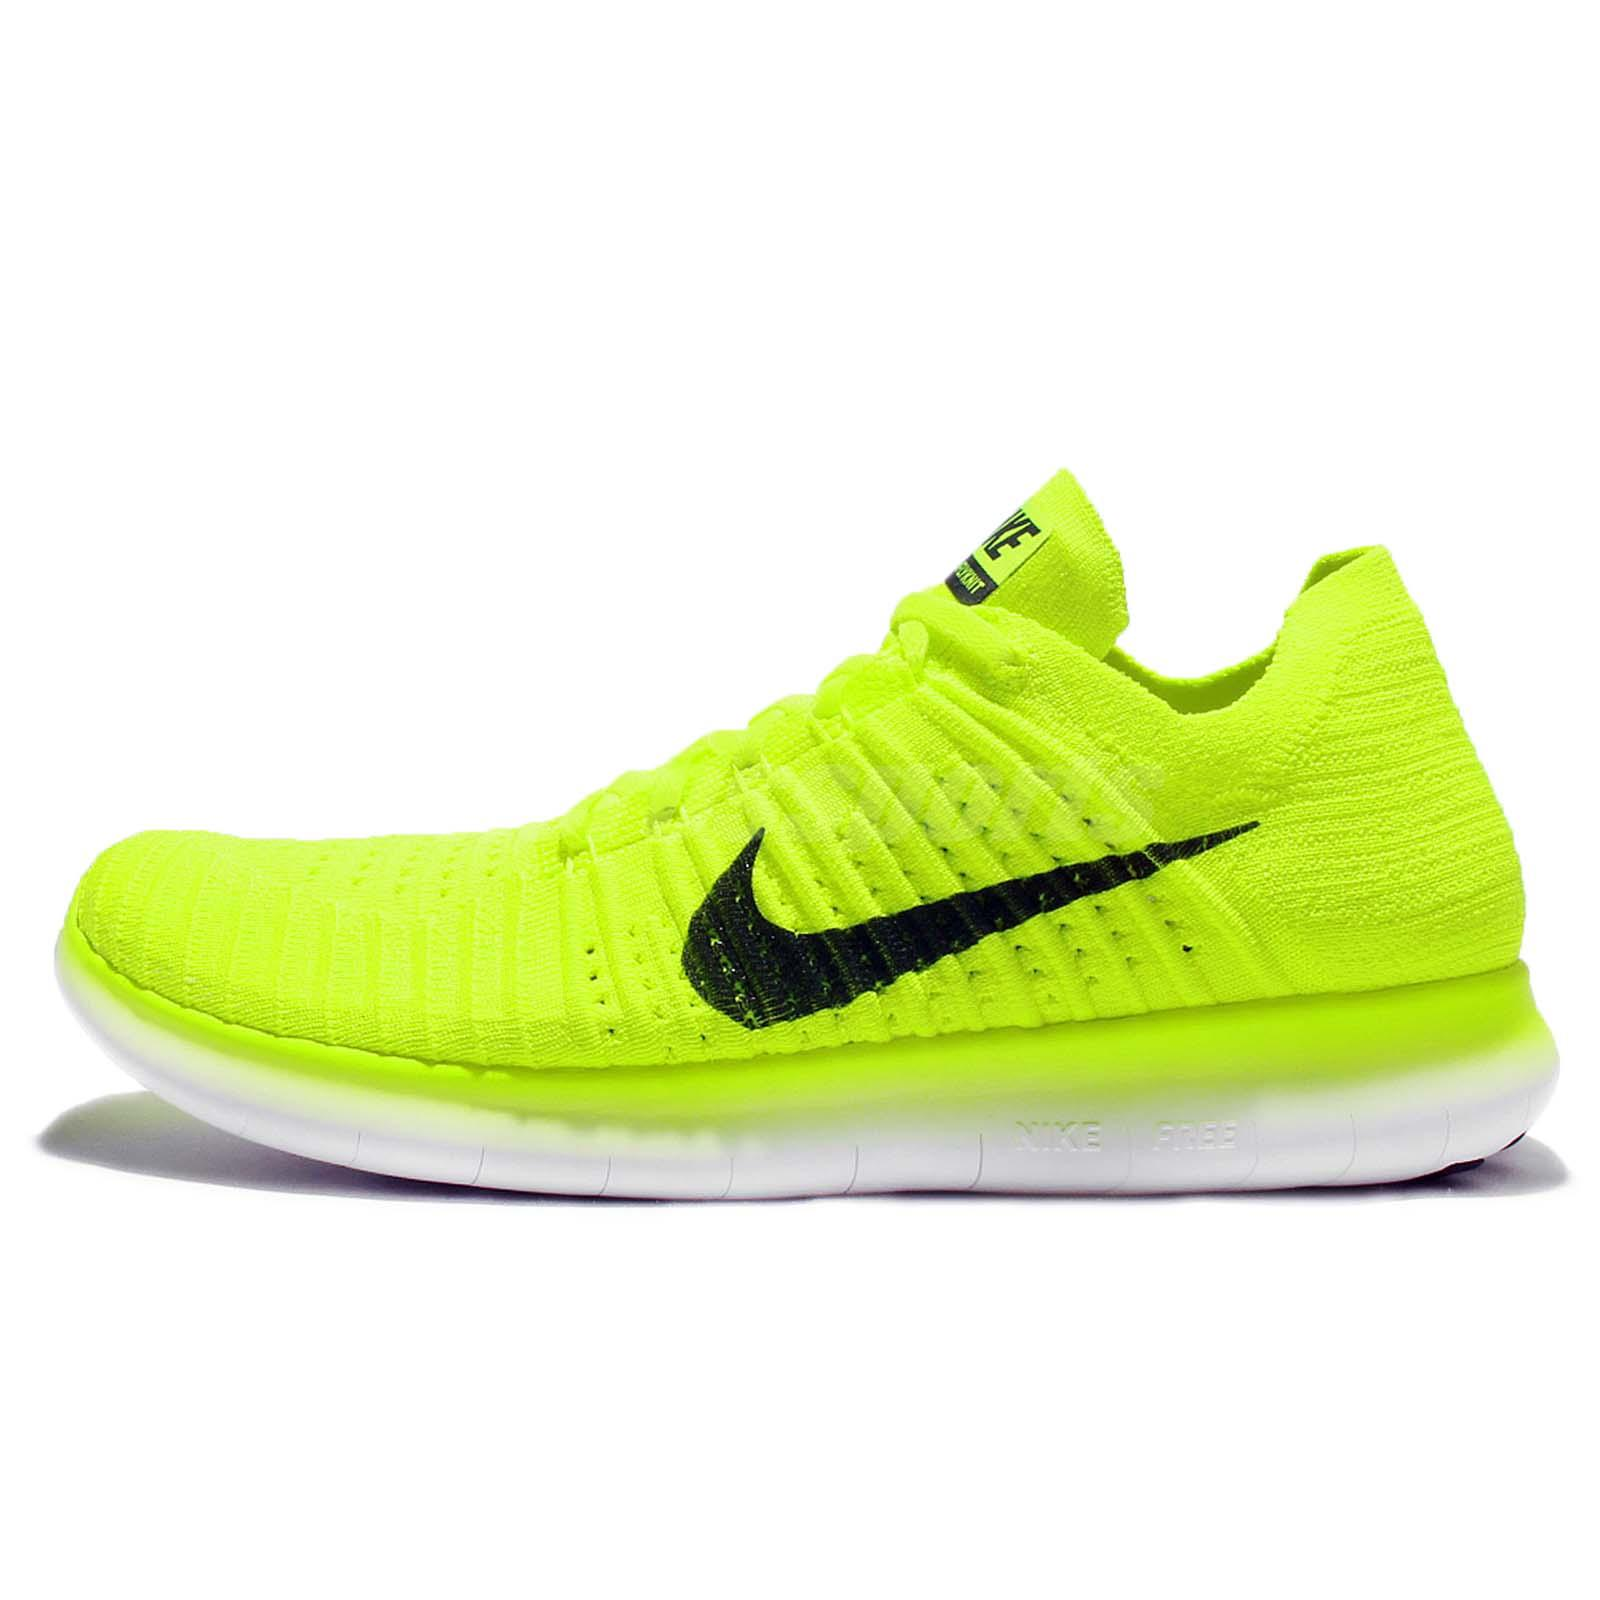 bd4a9262da9a Nike Free Rn Flyknit Medal Stand cost2insure.co.uk